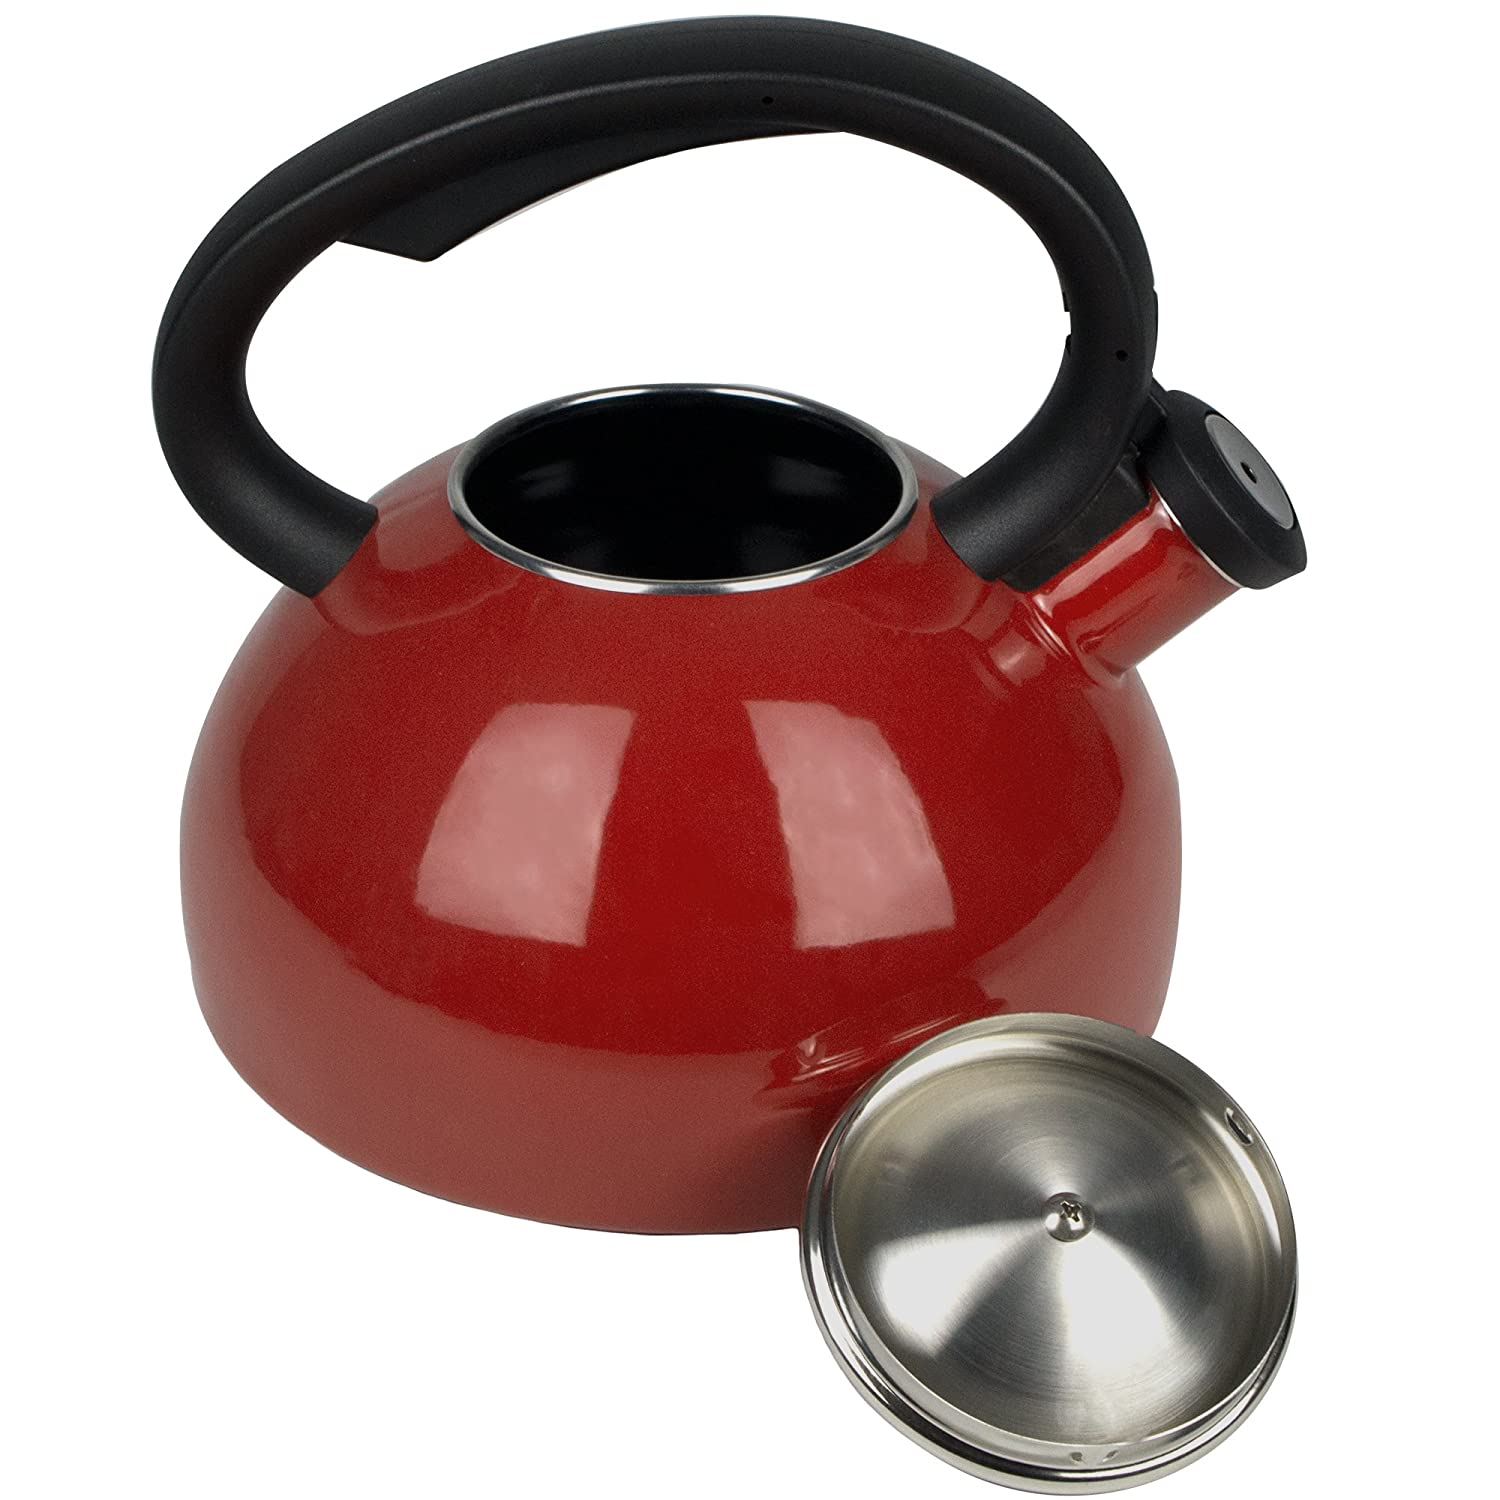 Costa by AIDEA Porcelain Enameled Tea Kettles Whistling Tea Kettle for Stovetop 2-Quart Teapots Red